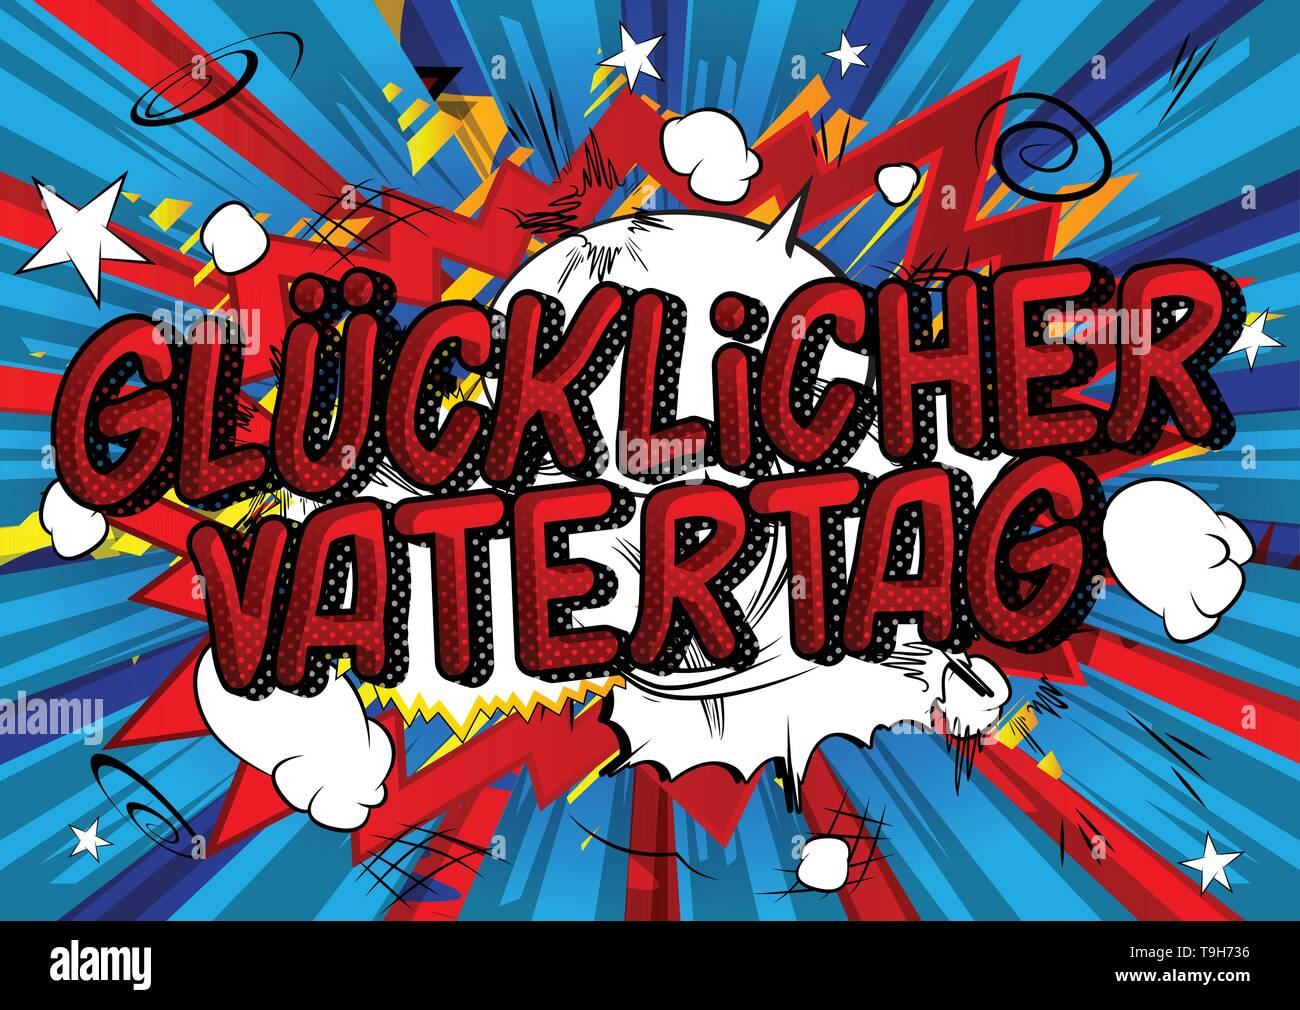 Glucklicher Vatertag (Father's Day in German)- Vector illustrated comic book style phrase on abstract background. - Stock Image